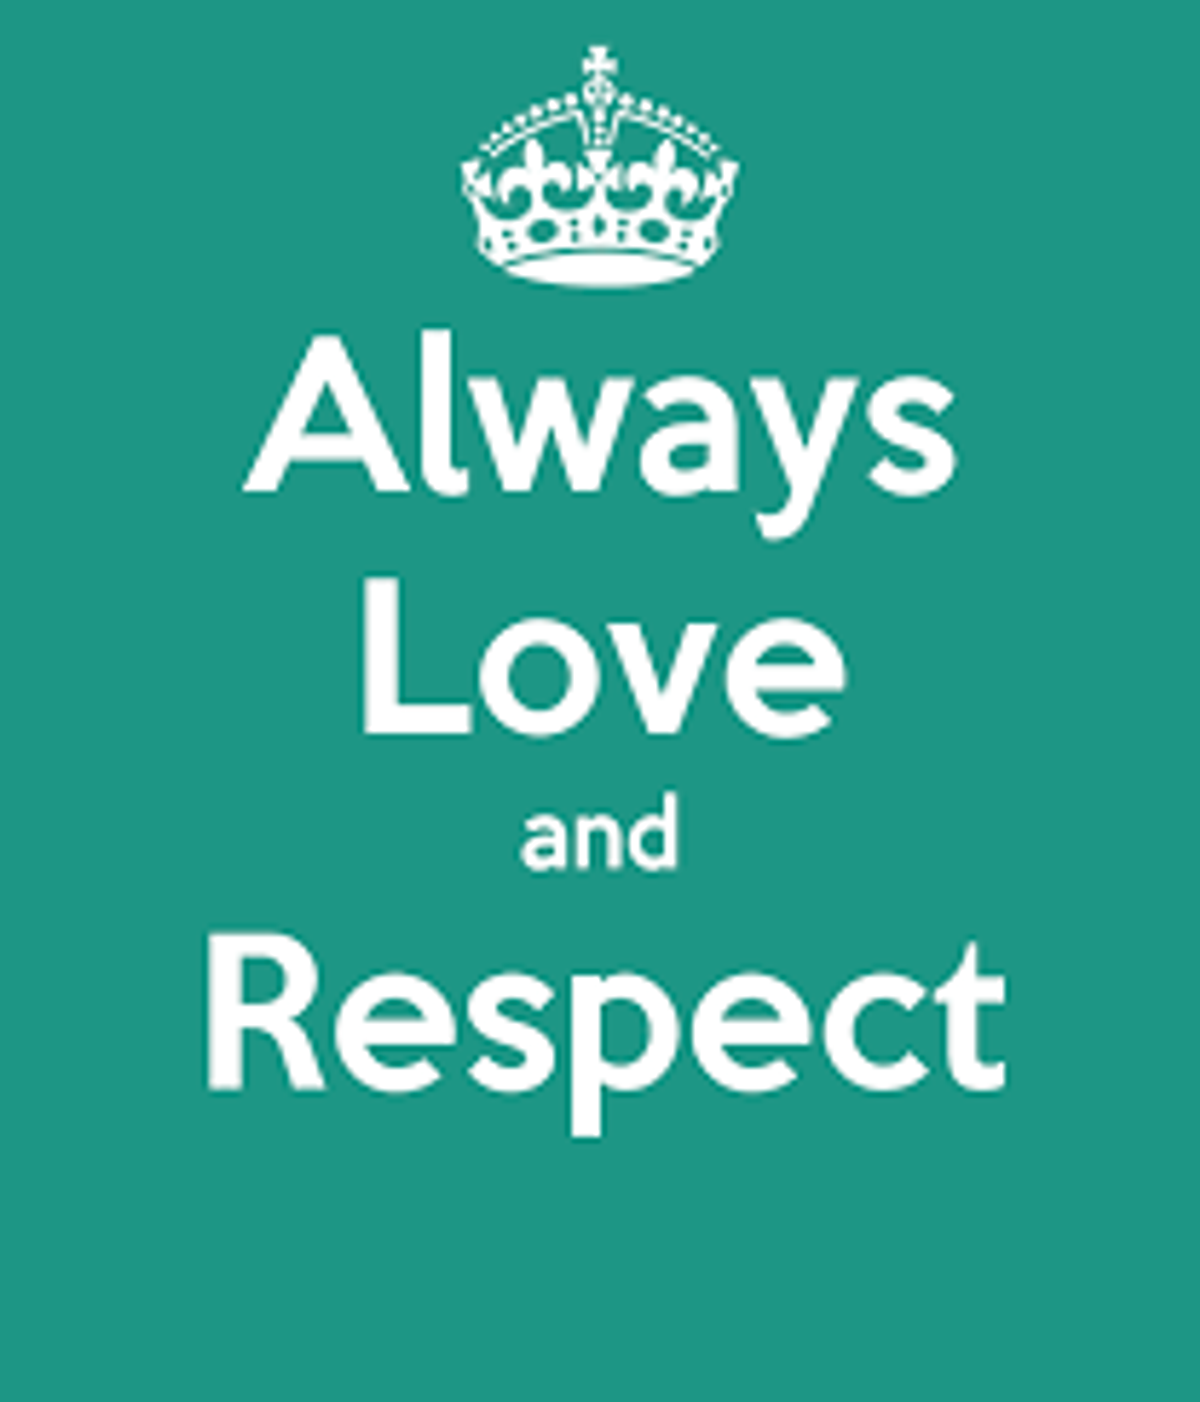 Love And Respect: Are They The Same Thing?